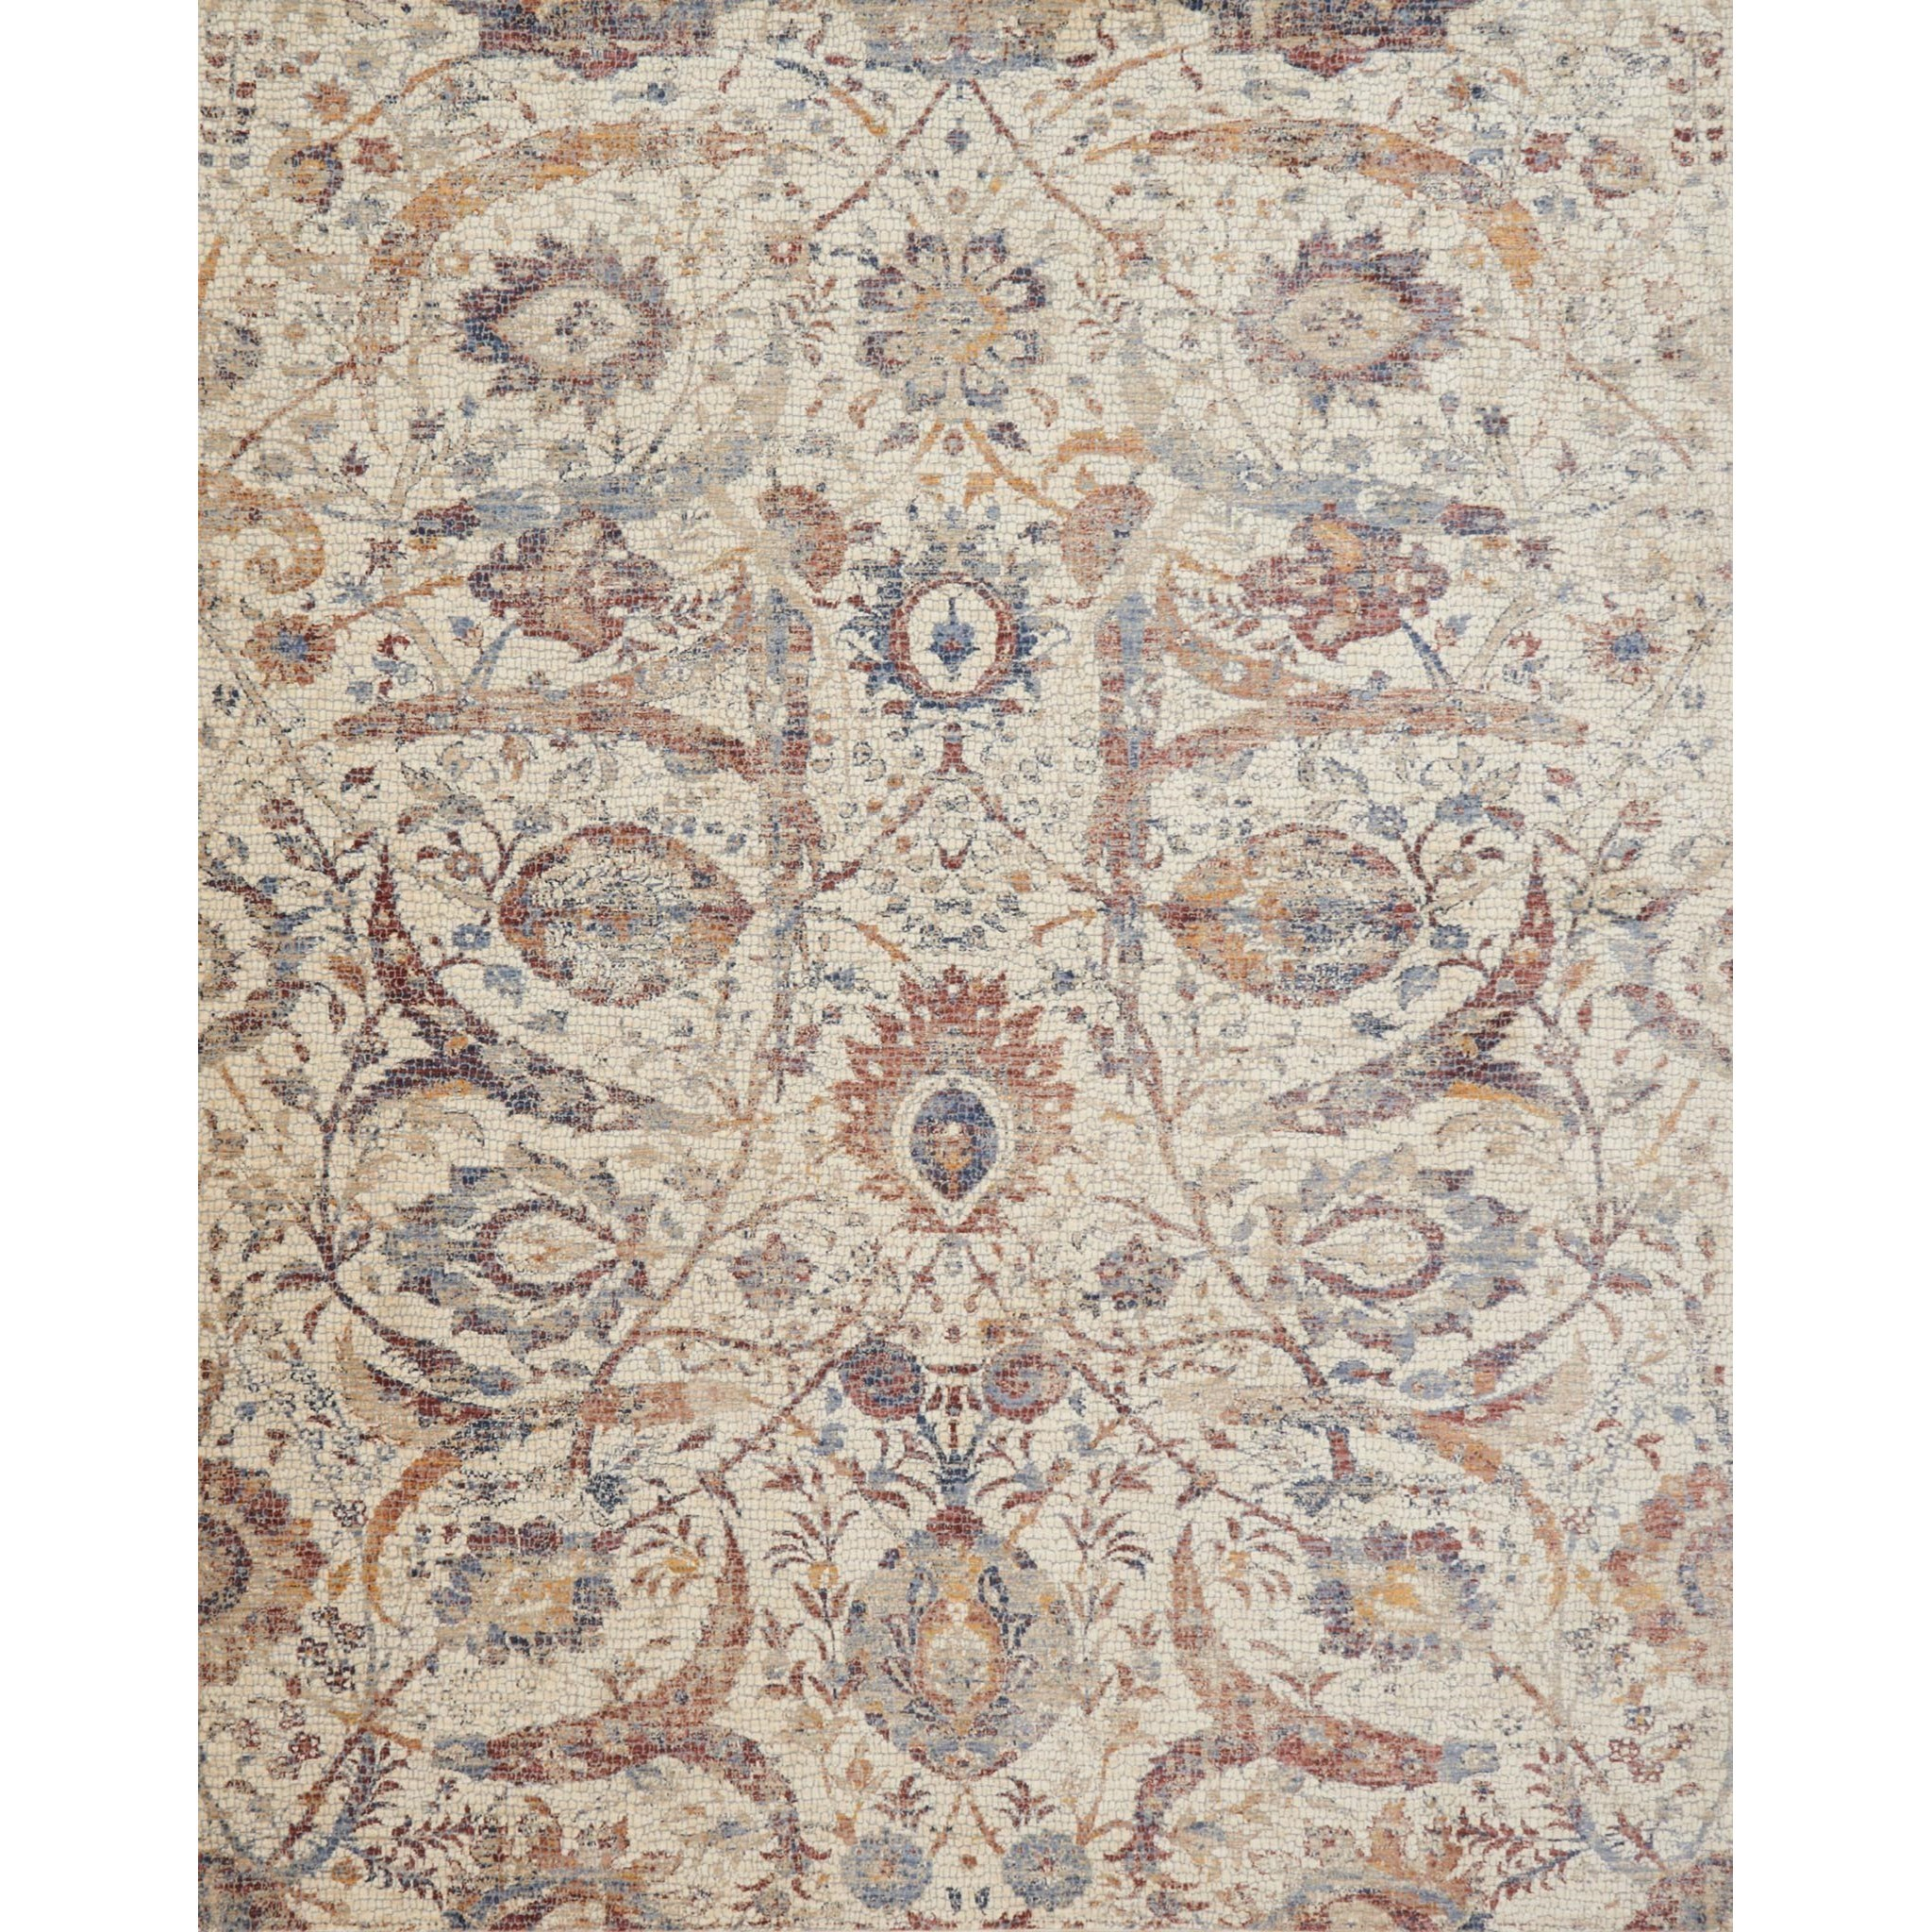 """Porcia 2'-0"""" x 3'-4"""" Area Rug by Loloi Rugs at Virginia Furniture Market"""